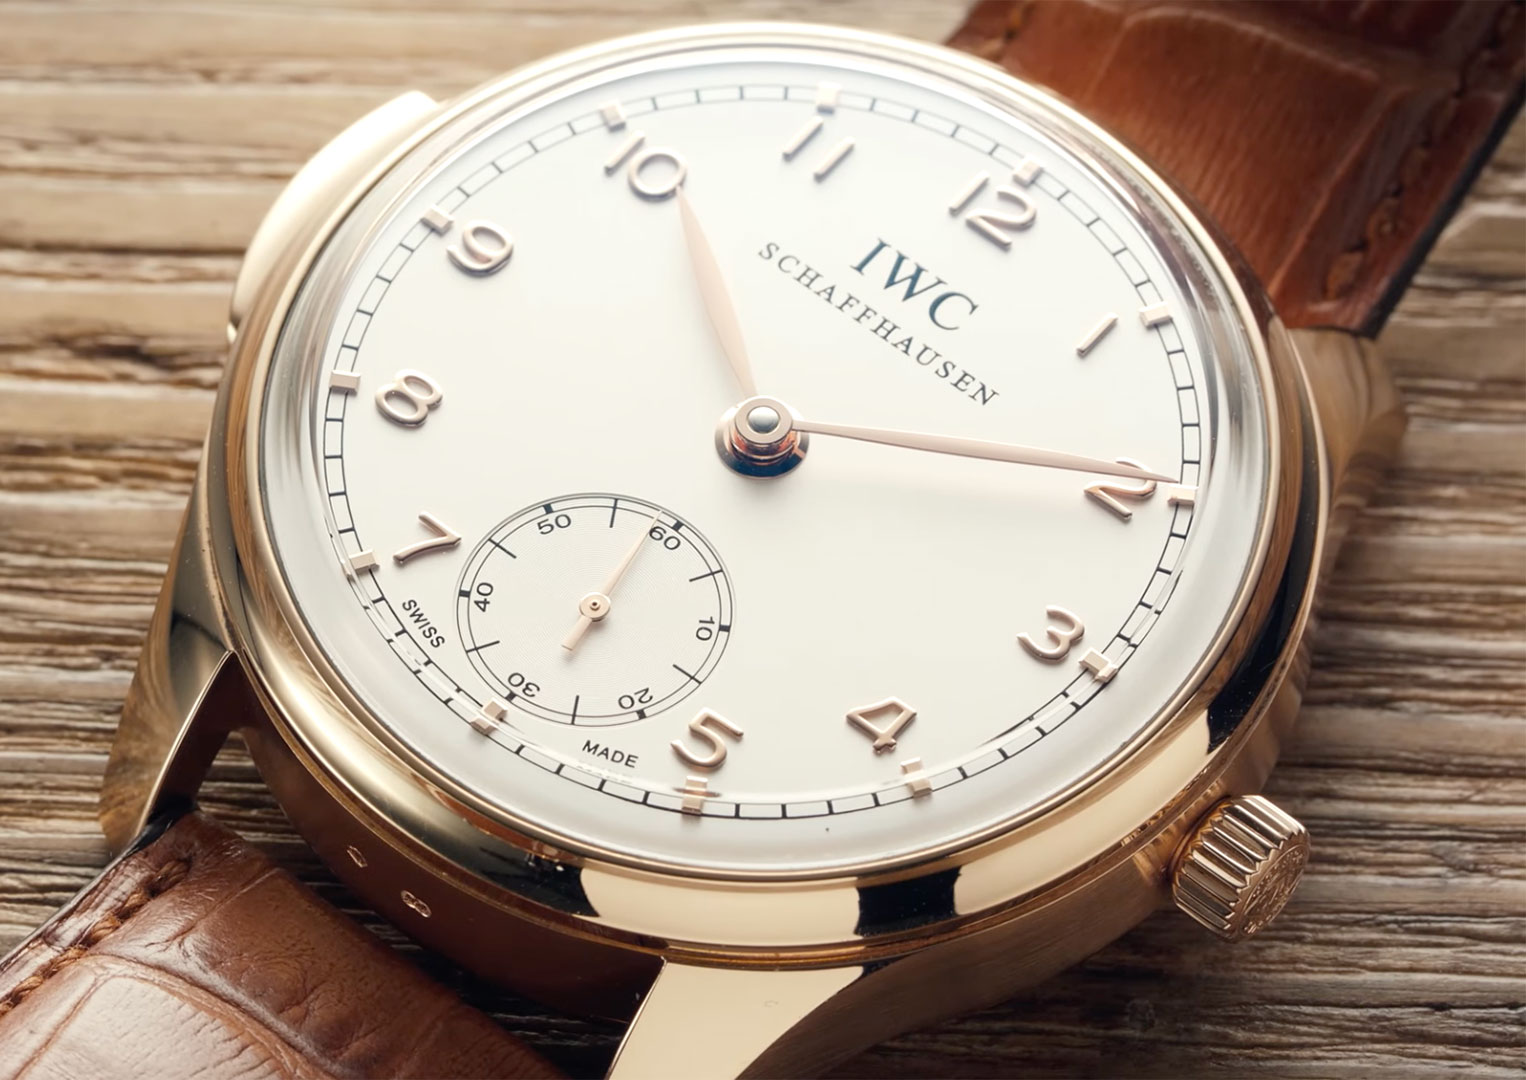 The IWC Portugieser Minute Repeater IW544907